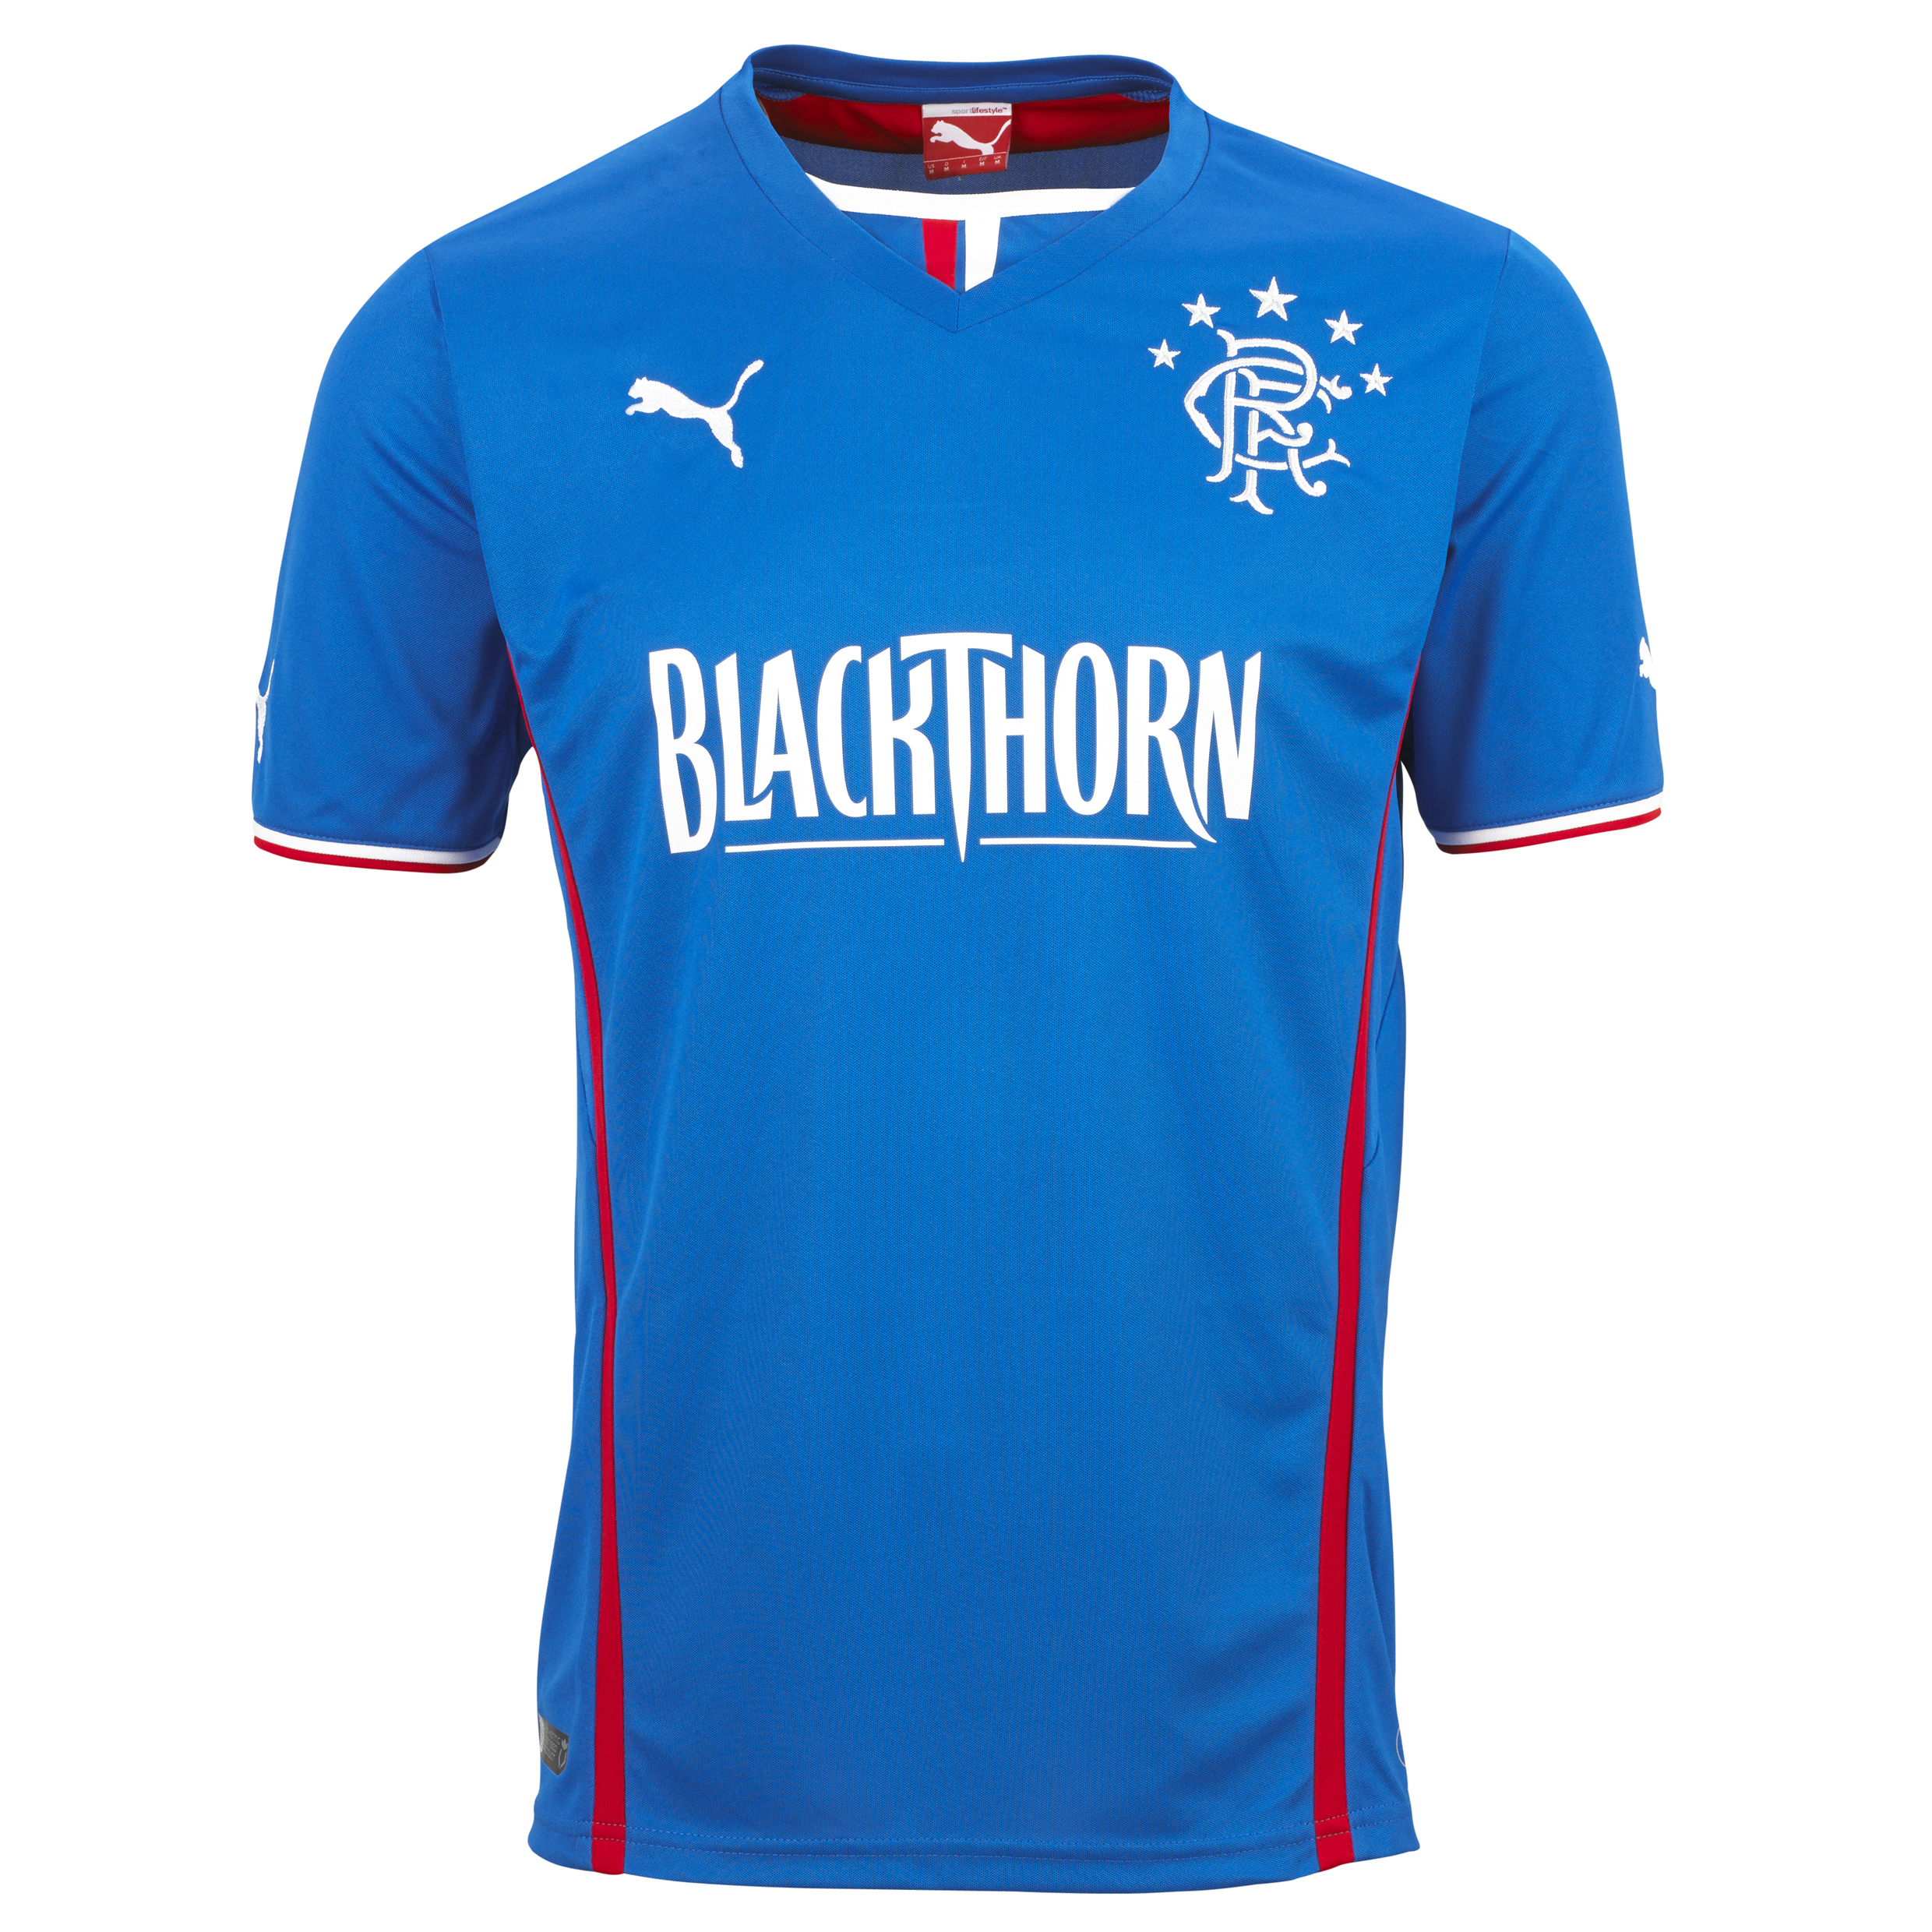 Glasgow Rangers Home Shirt 2013/14